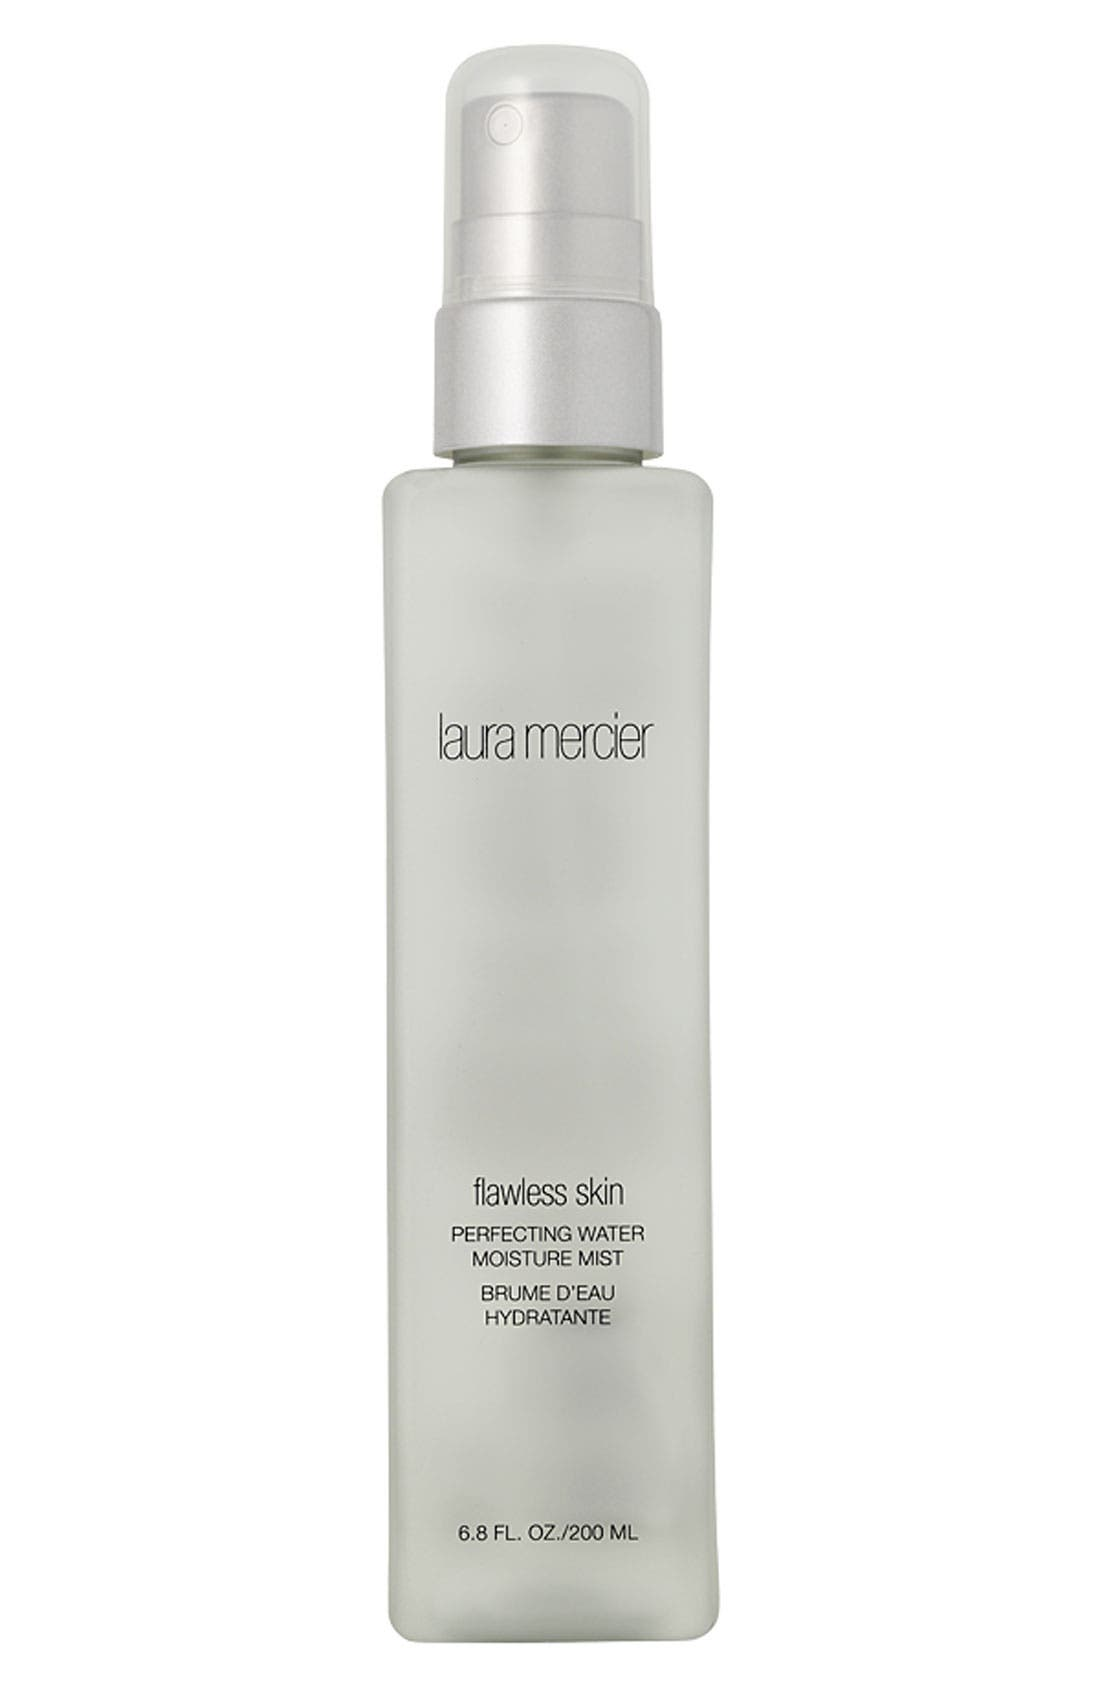 'Flawless Skin' Perfecting Water Moisture Mist,                             Main thumbnail 1, color,                             NO COLOR